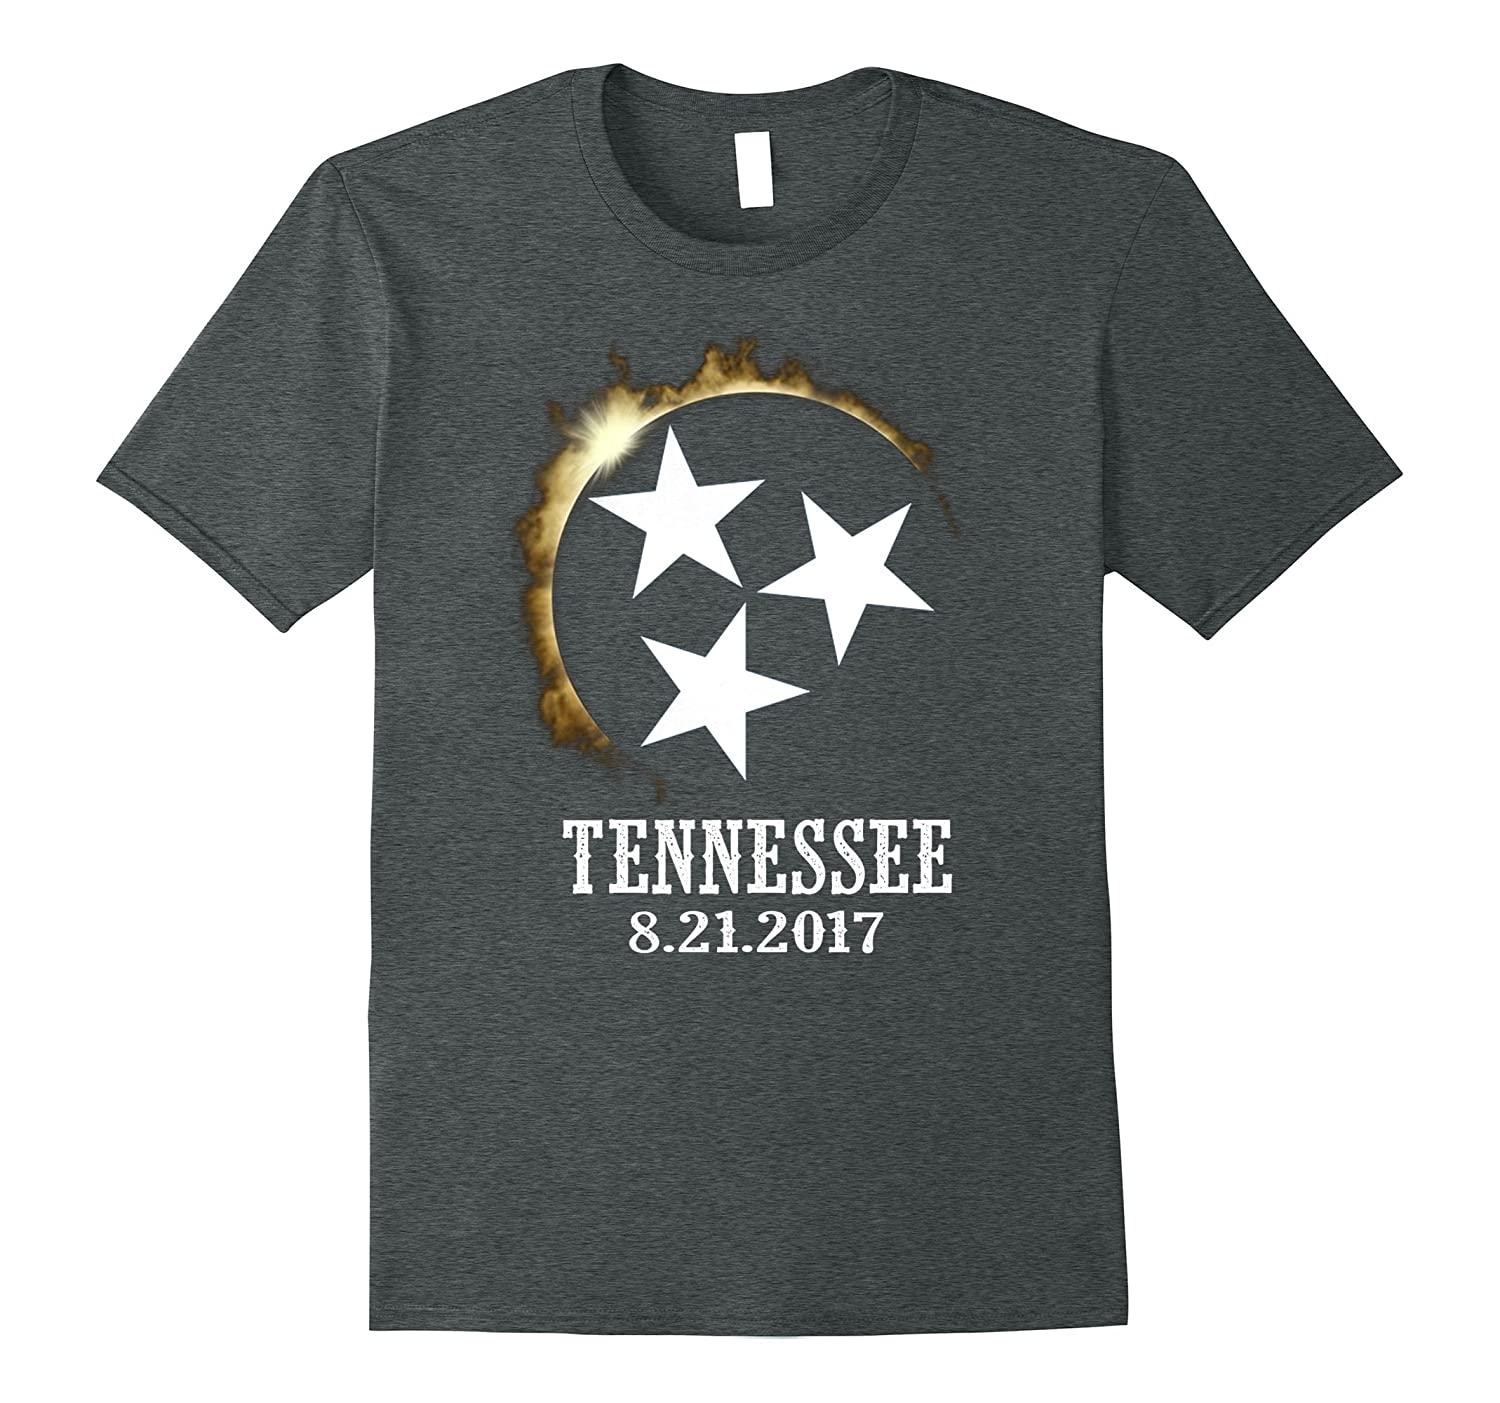 2017 Tennessee Eclipse Viewing Tee Shirt Flag I was There-BN